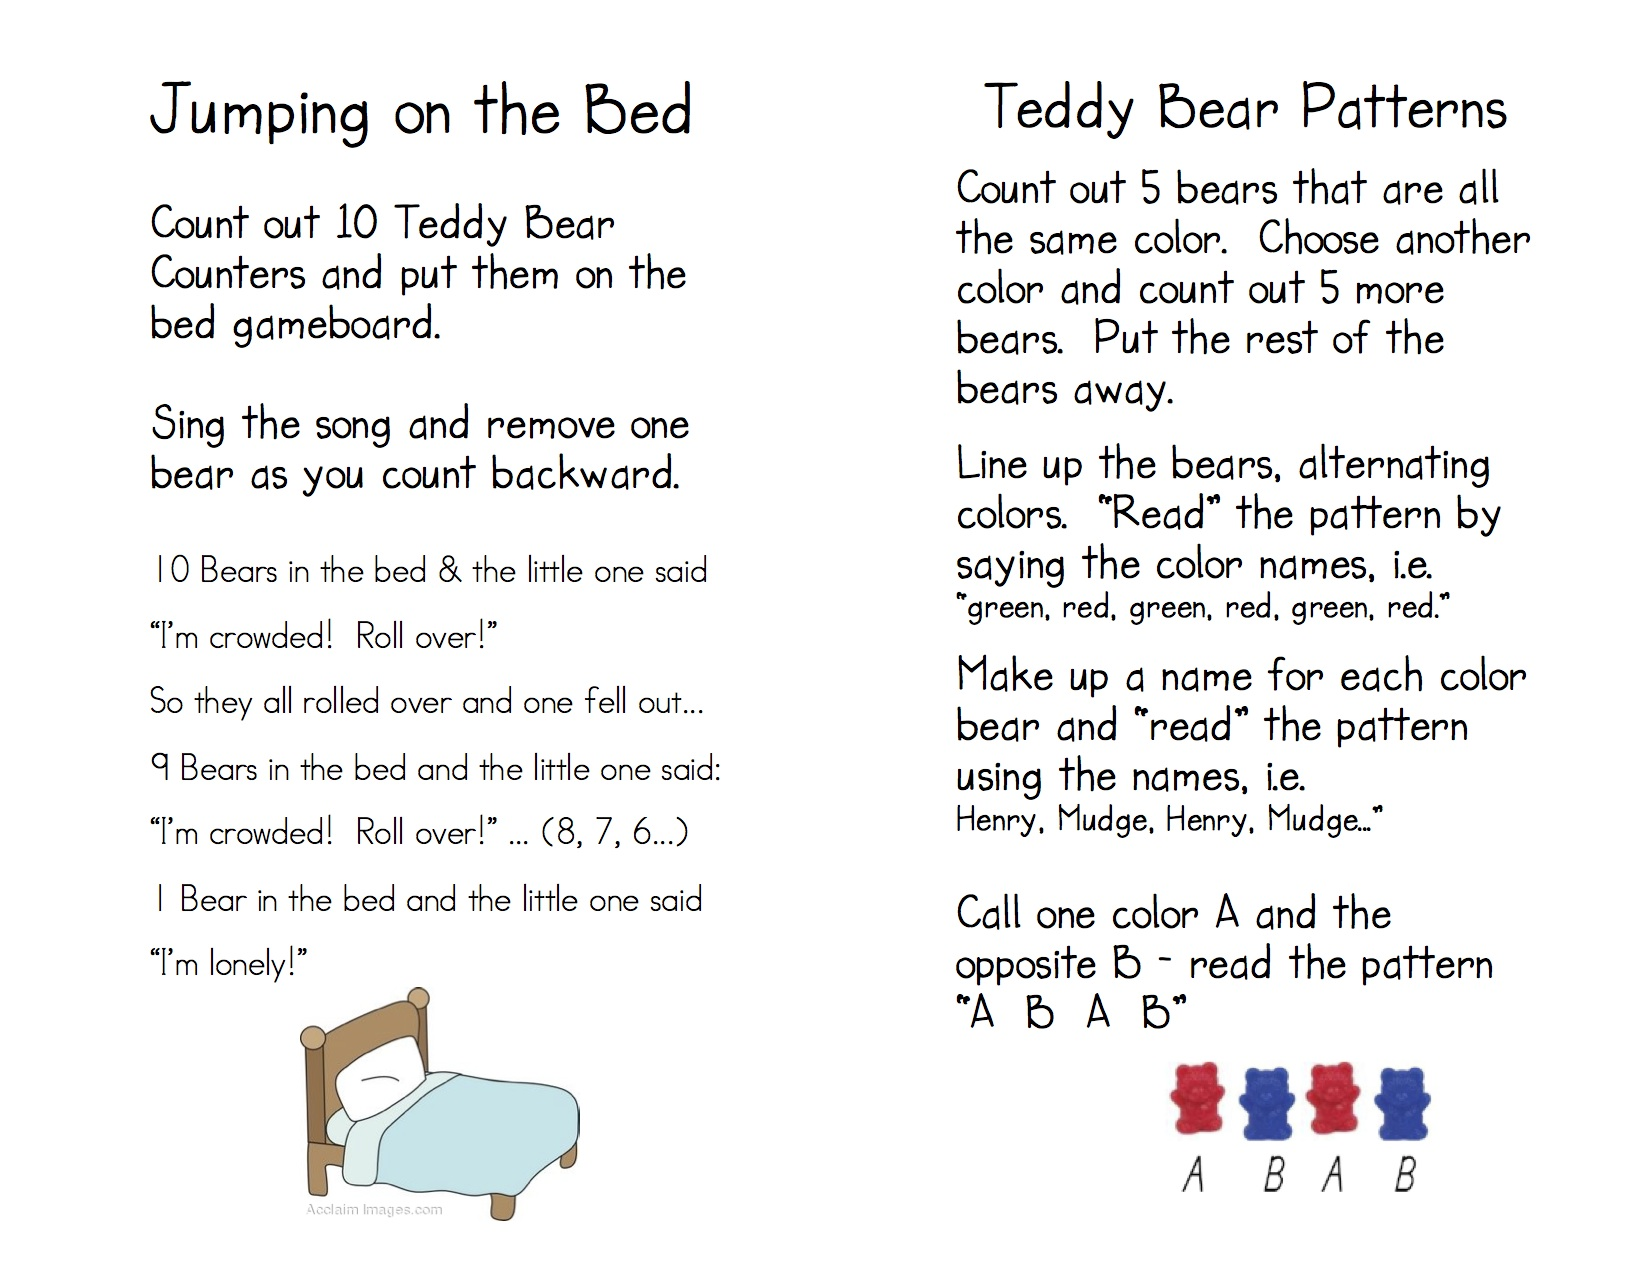 Teddy Bear Counters